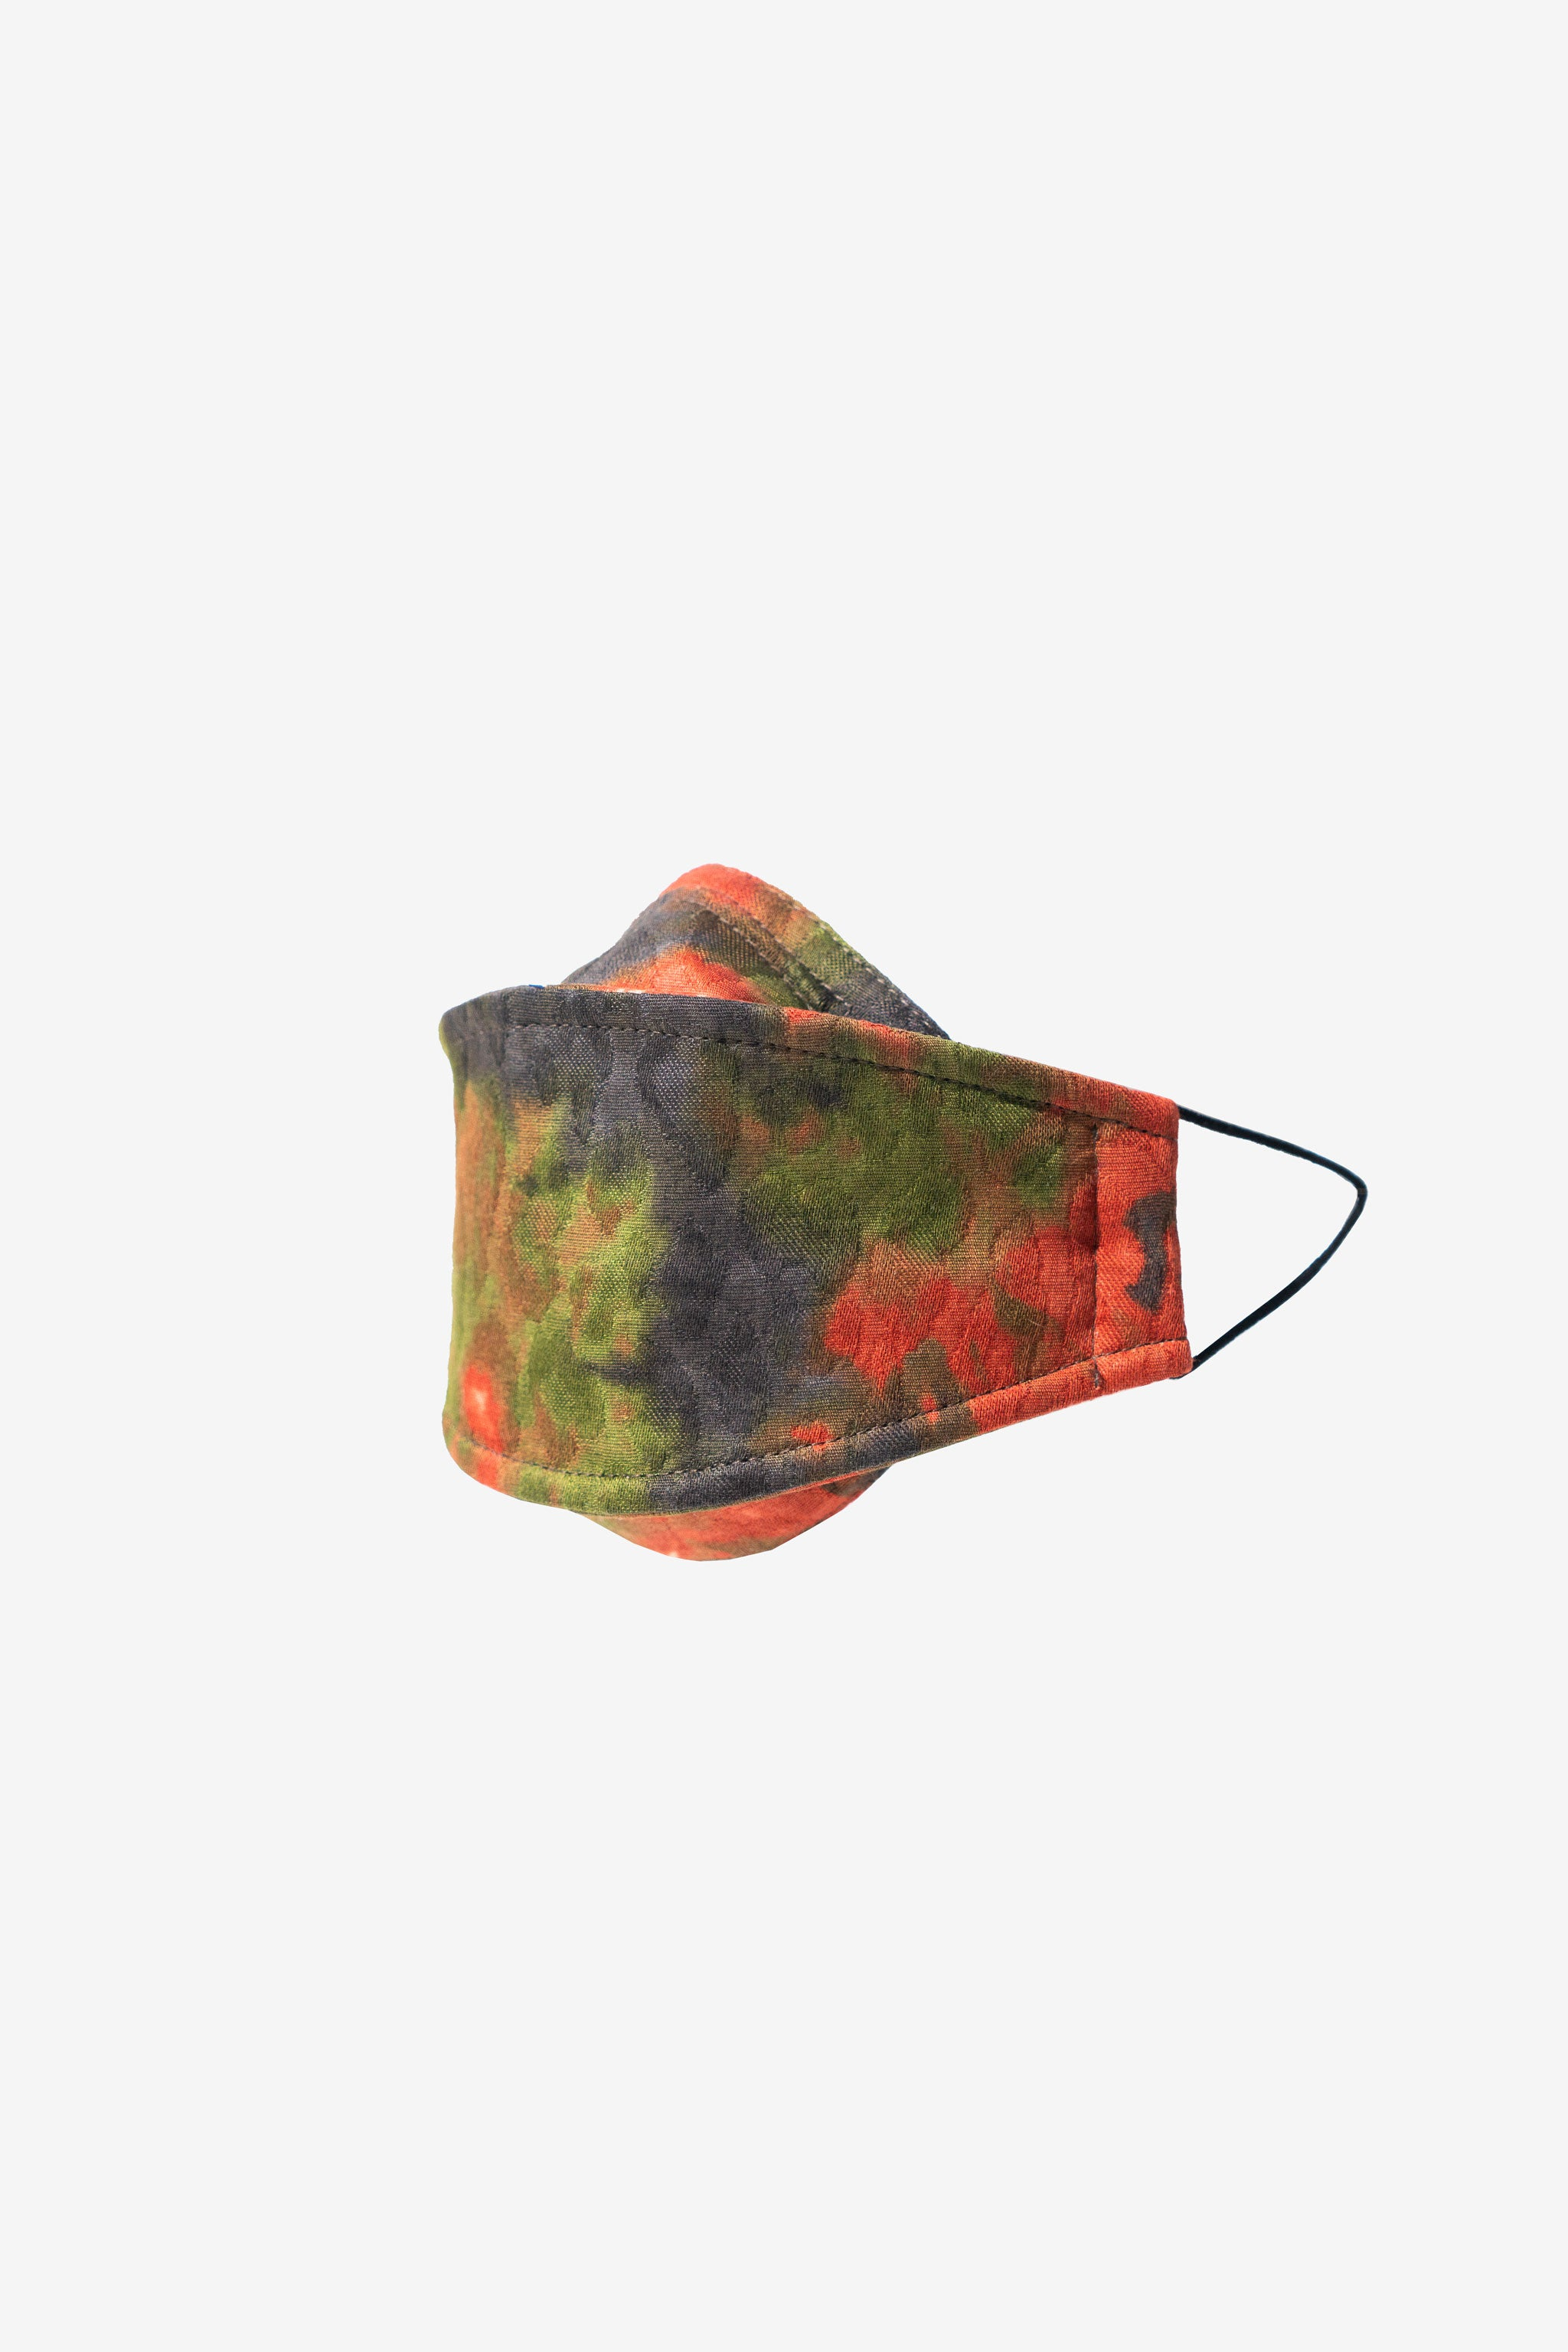 Goodfight Red Camo SALVAGE PROGRAM - Mark I Mask